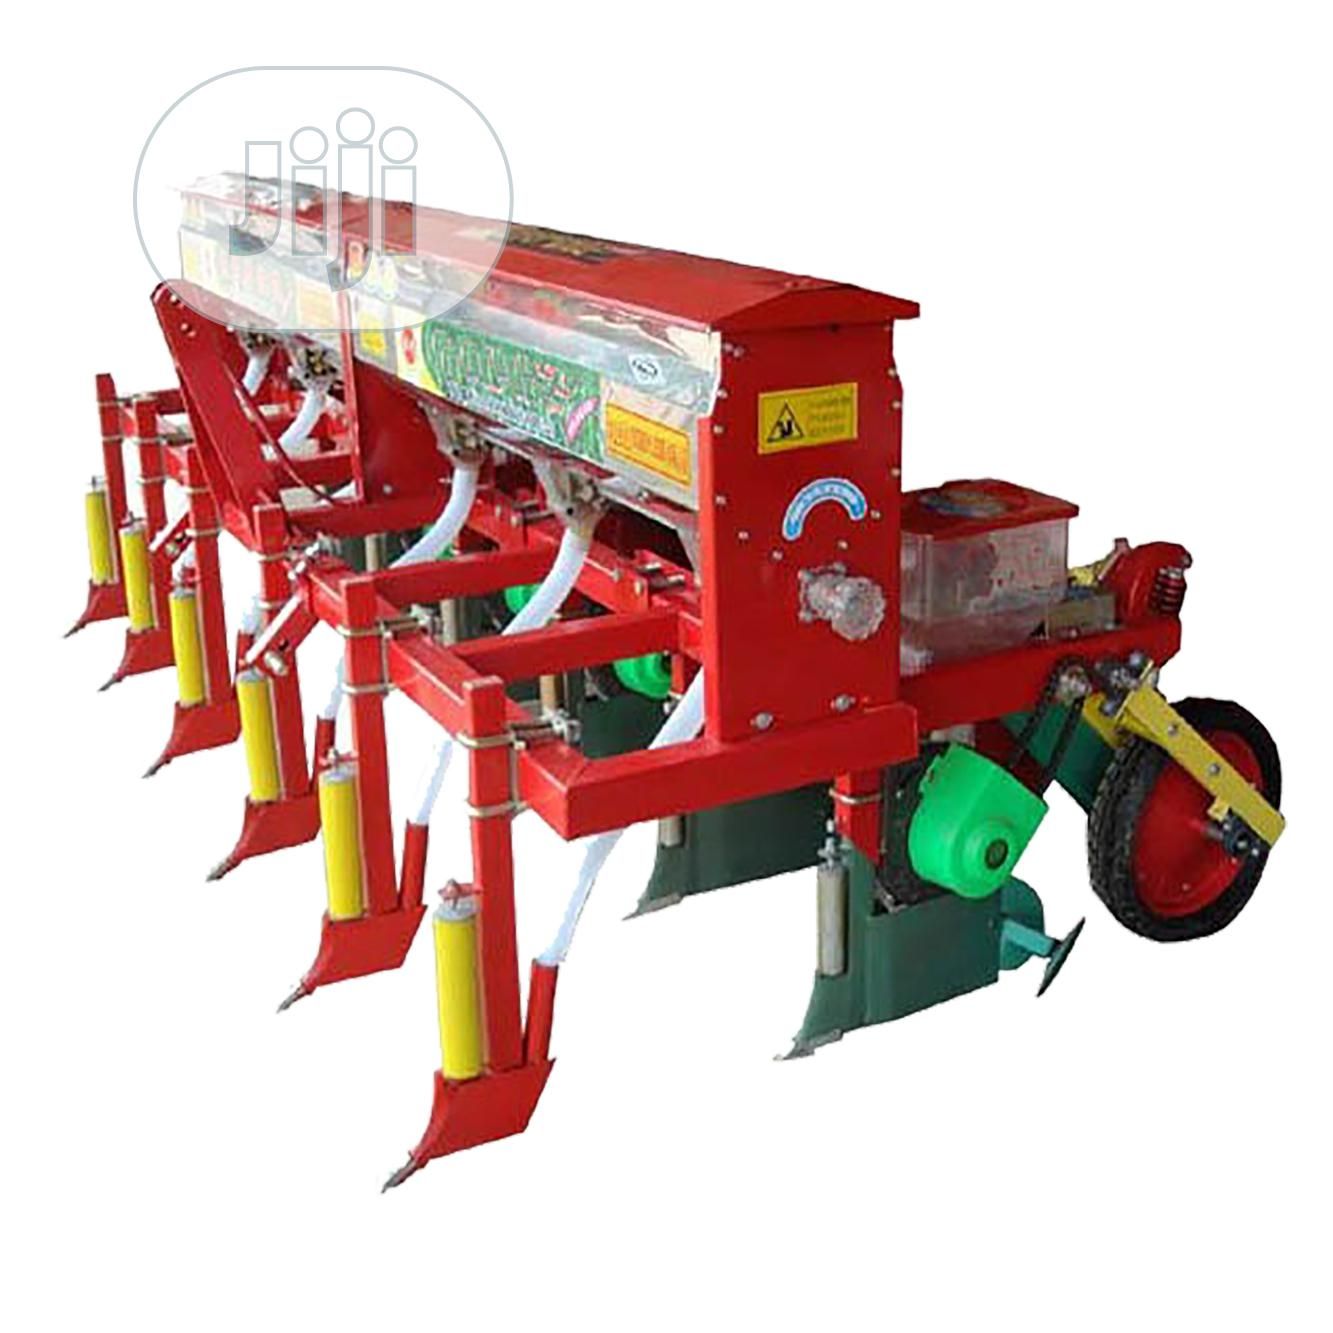 Maize Planter For Sale | Farm Machinery & Equipment for sale in Gbagada, Lagos State, Nigeria